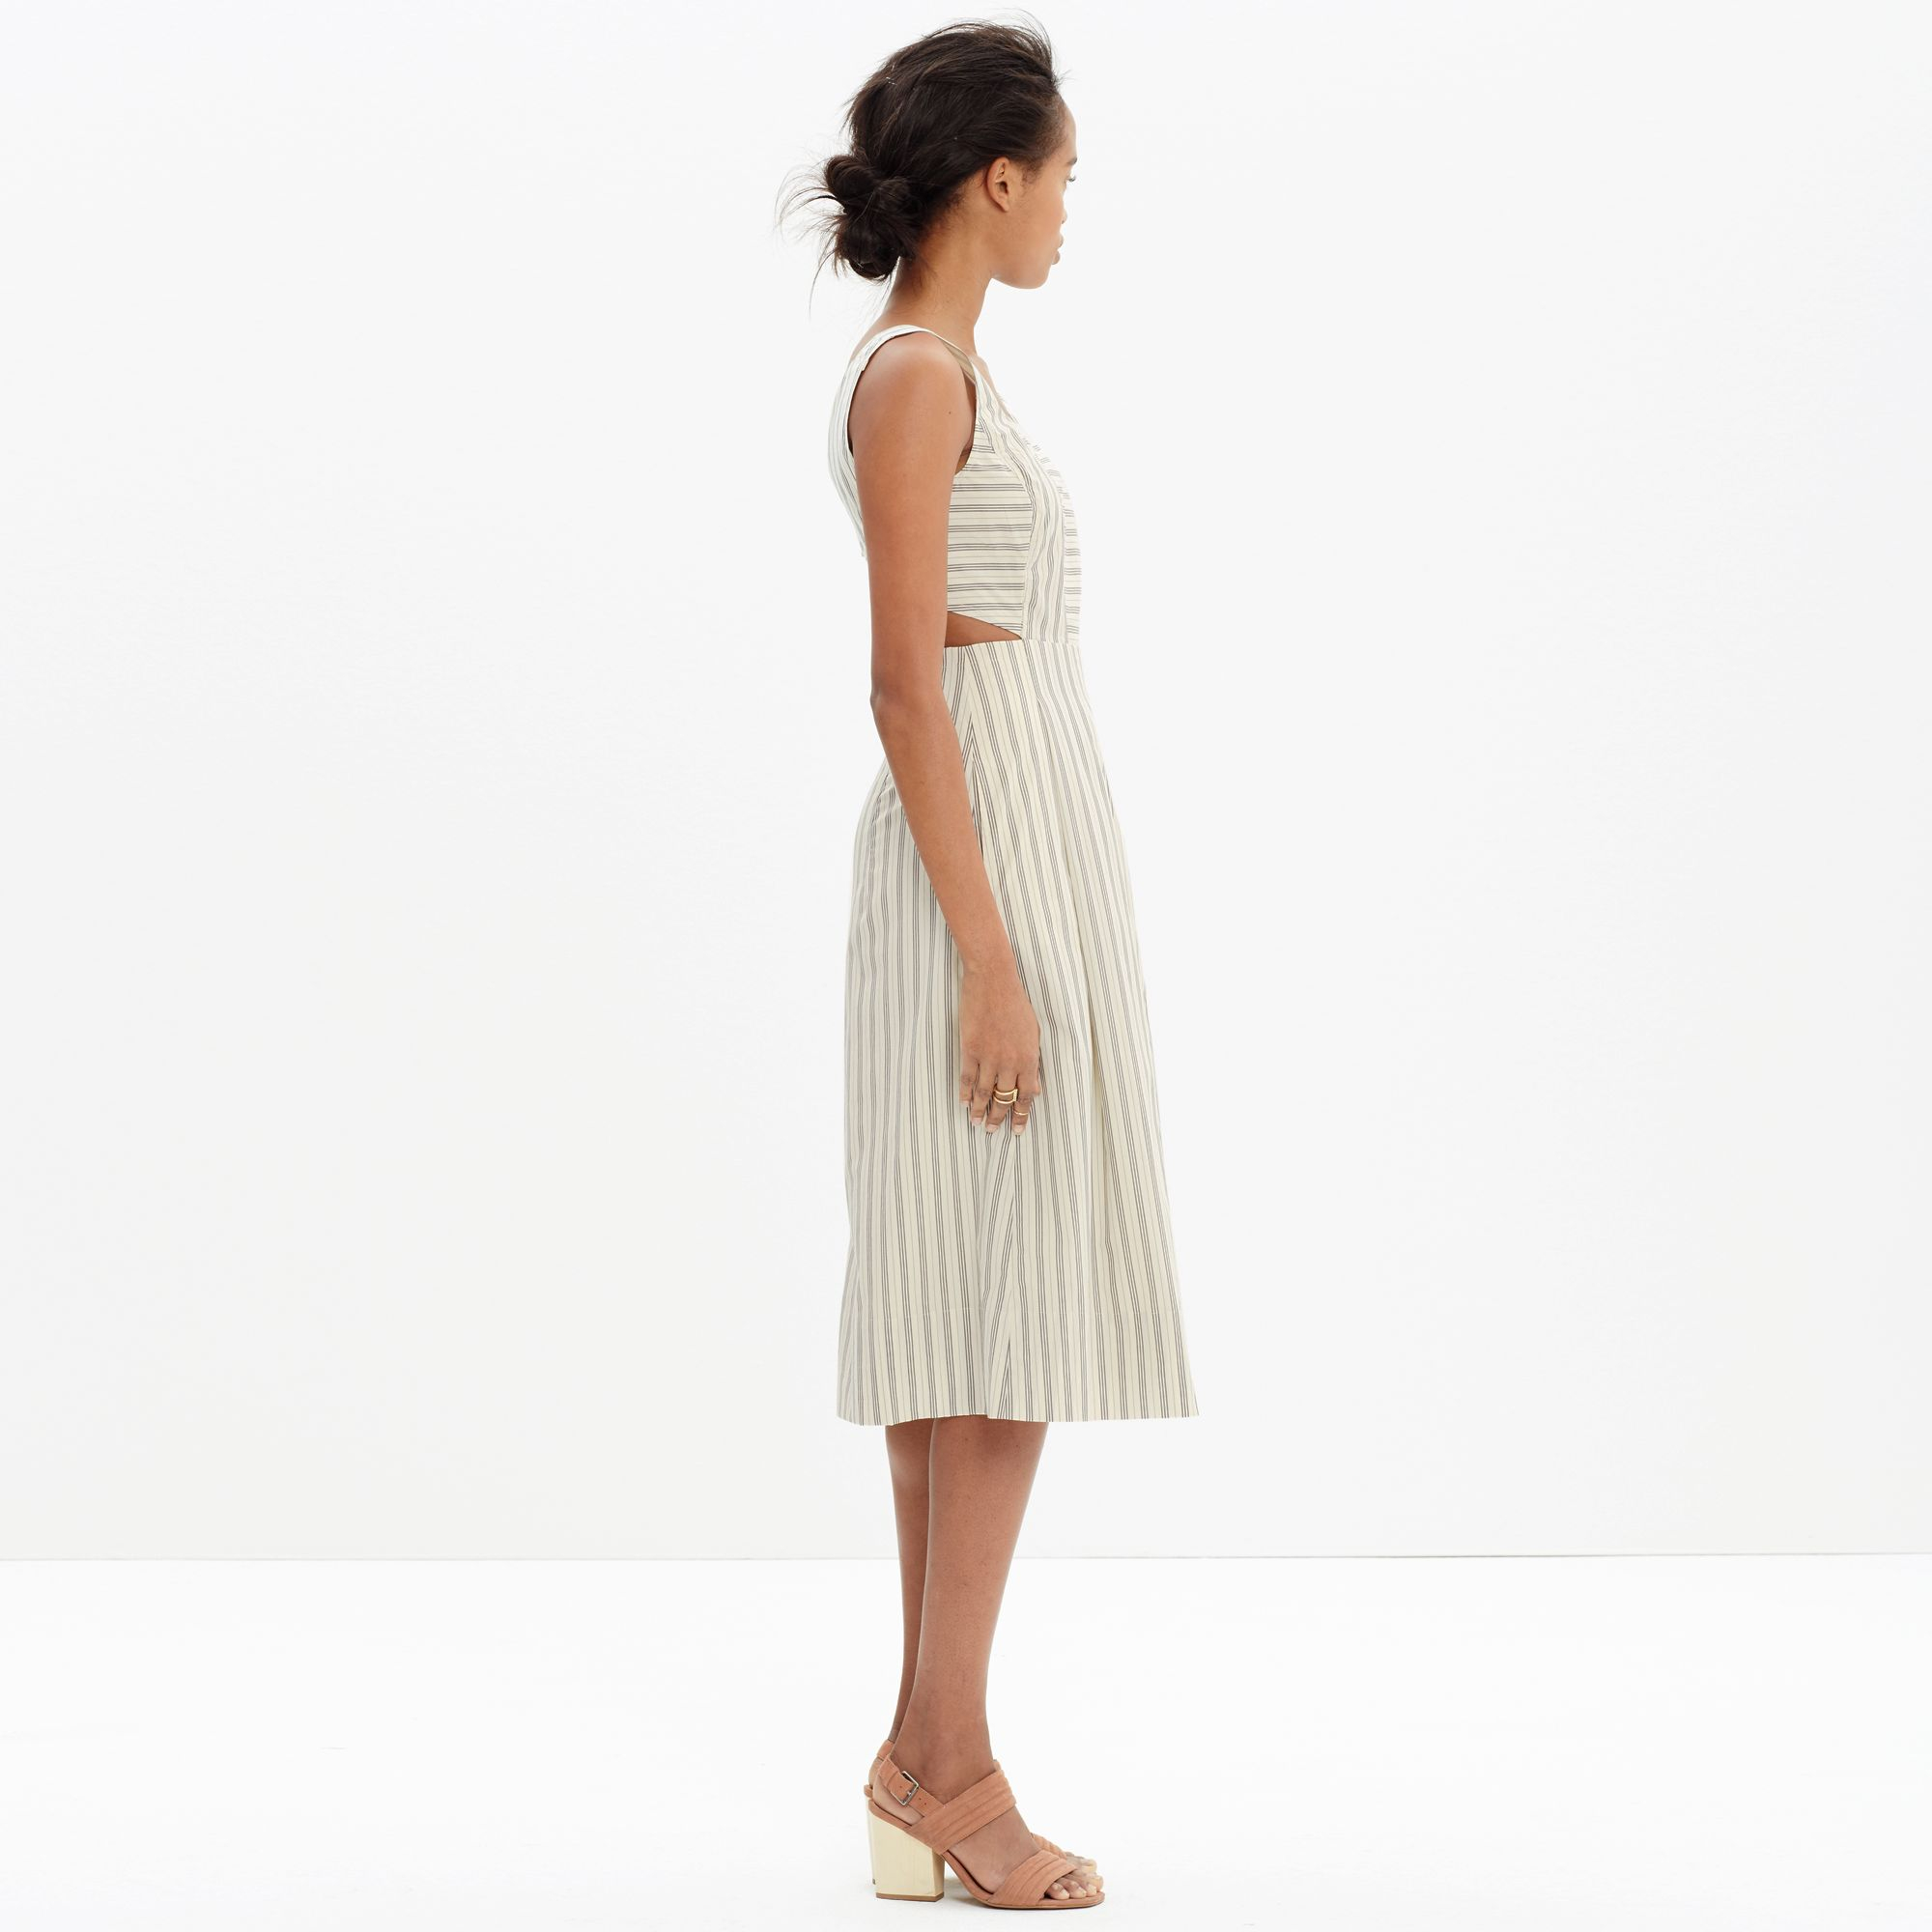 be4ed91ef62 Madewell Cutout Sundress In Stripe in Gray - Lyst